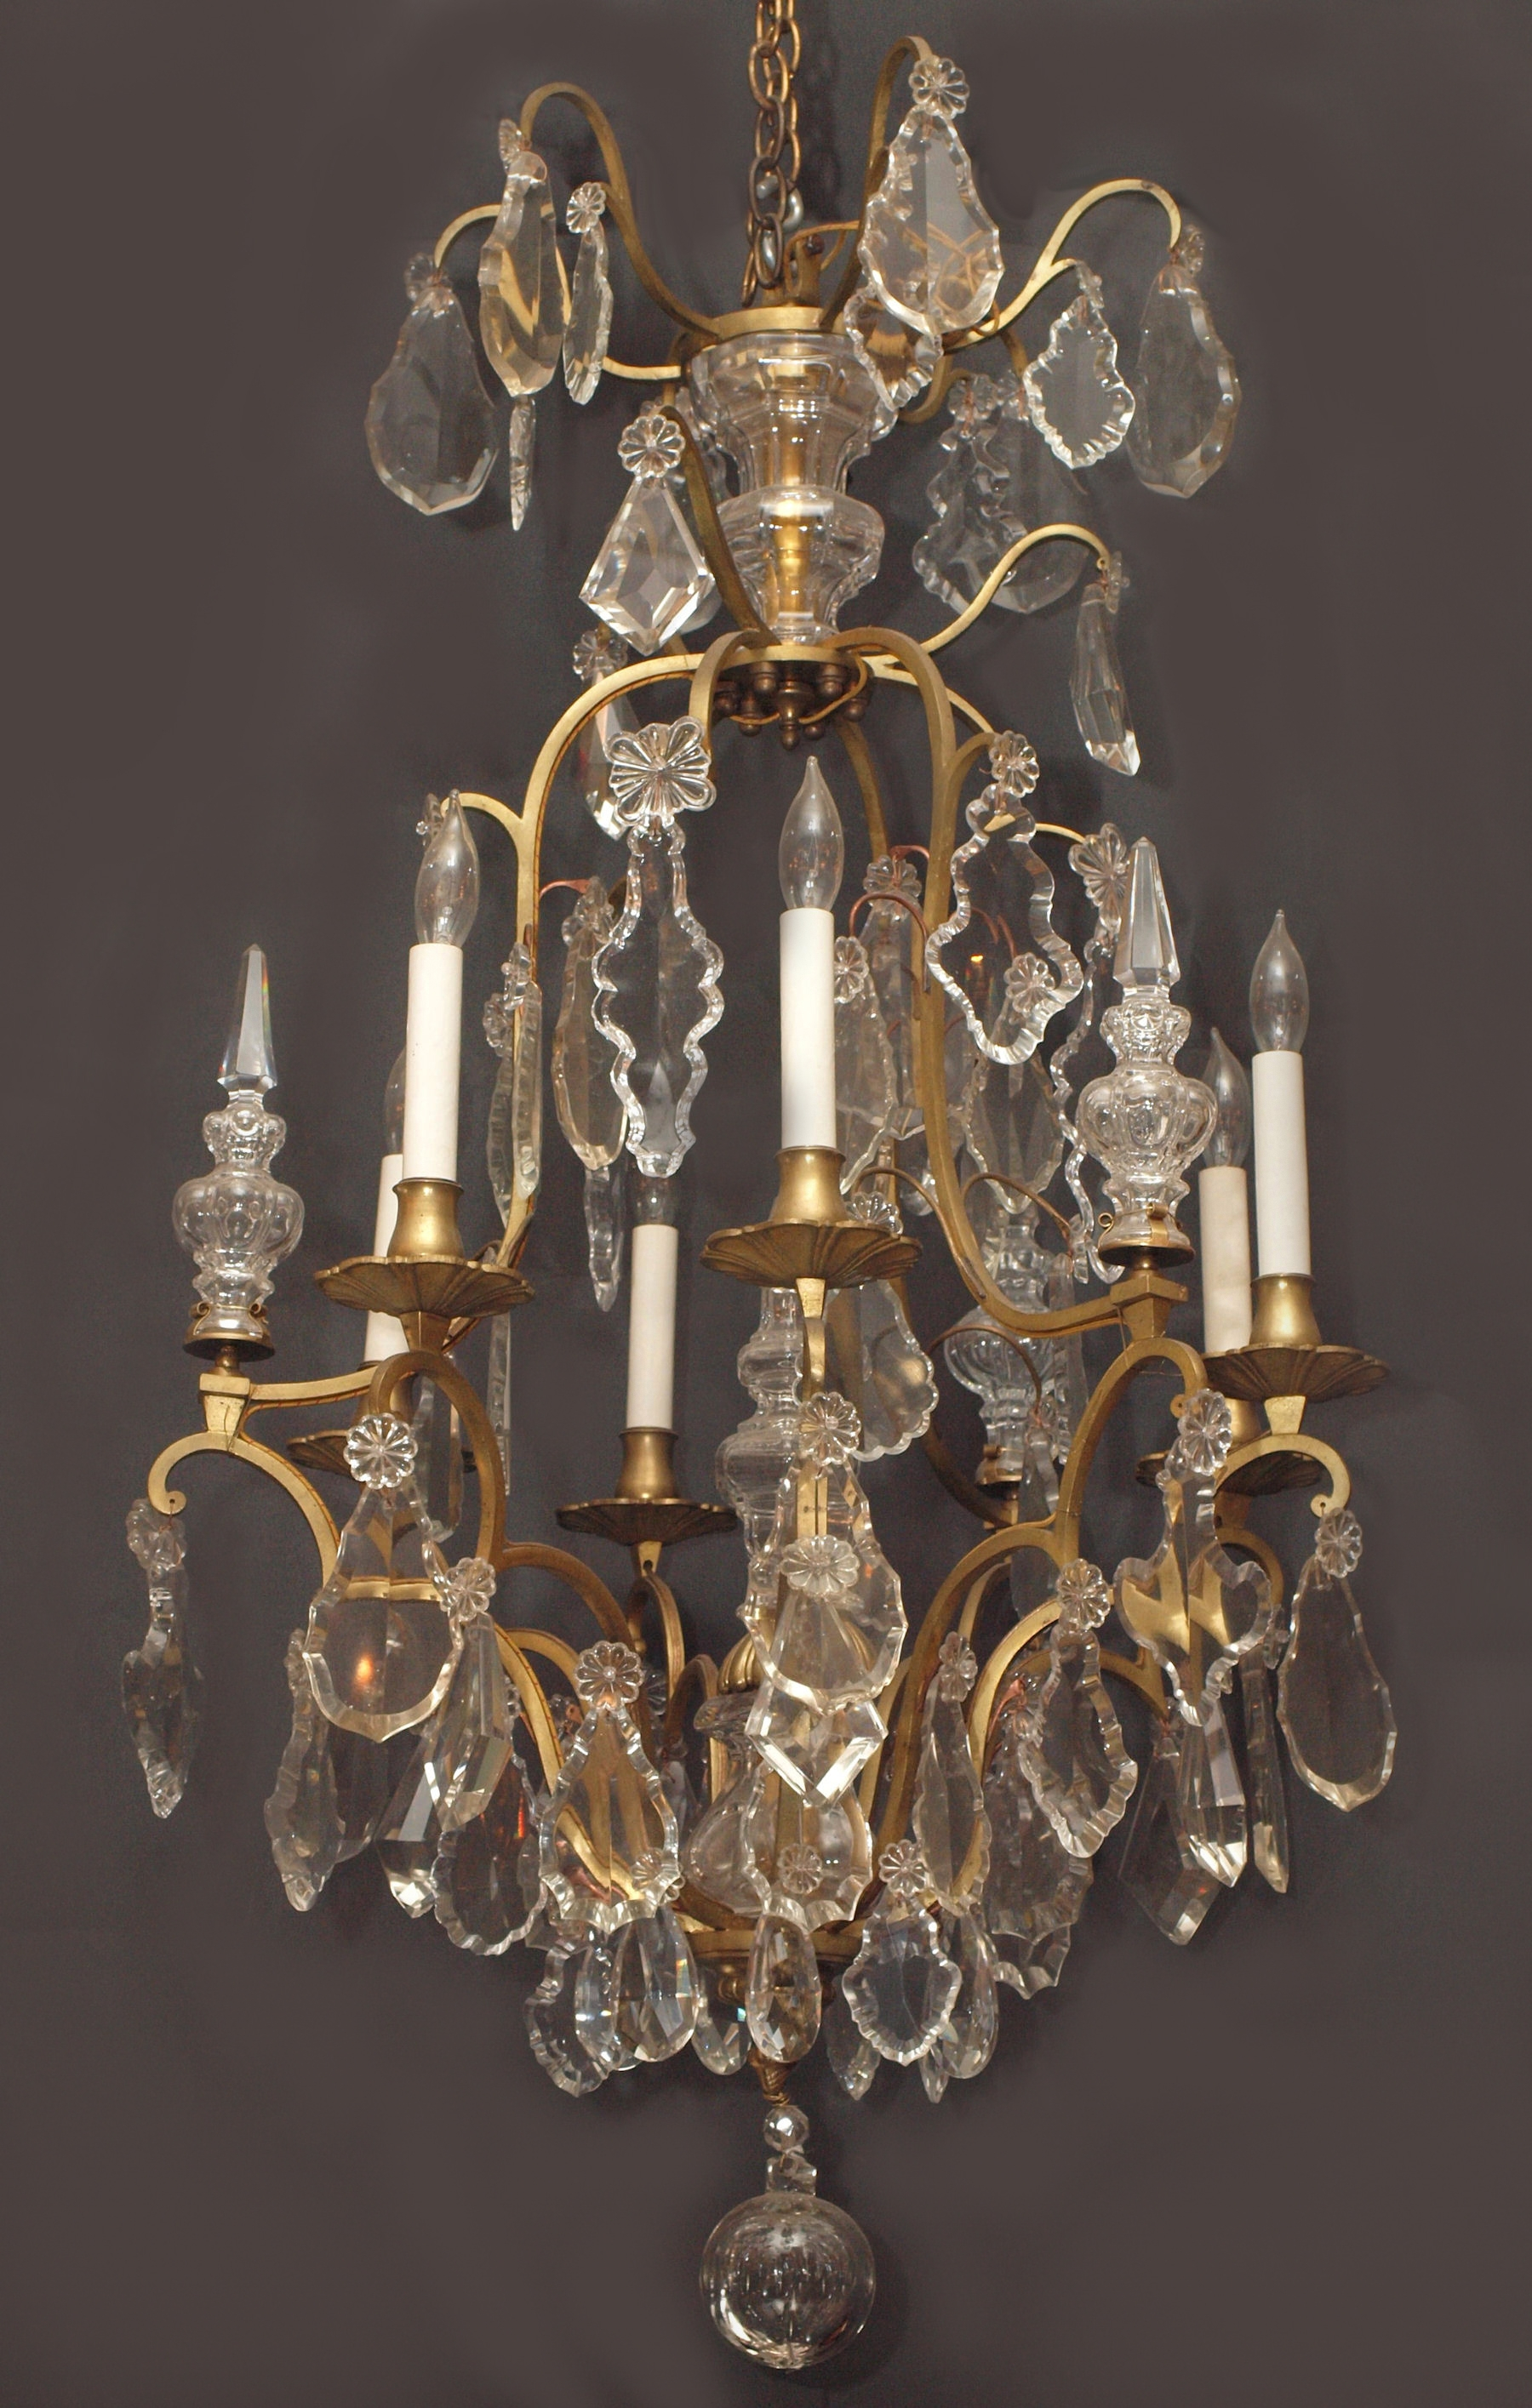 Antiques Classifieds Antiques Antique Lamps And Lighting Inside French Chandeliers (Image 2 of 15)